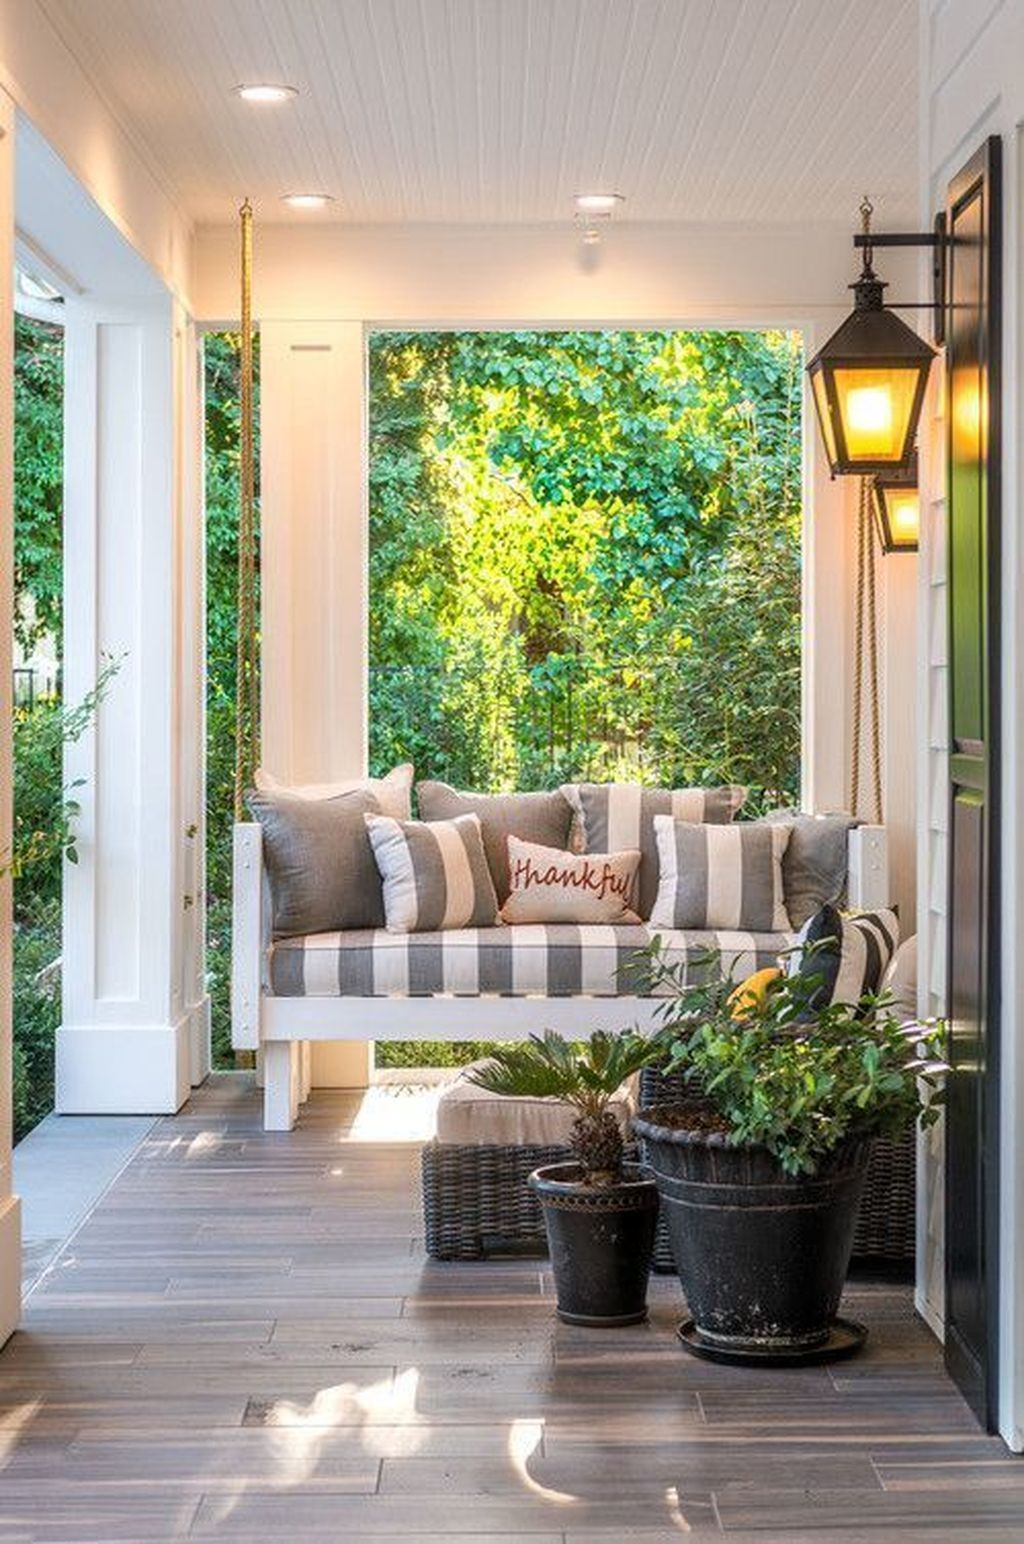 Front Porch Decorating Ideas With The Perfect Adirondack Chairs Our House Now A Home: 36 Catchy Farmhouse Front Porch Decor Ideas For This Season